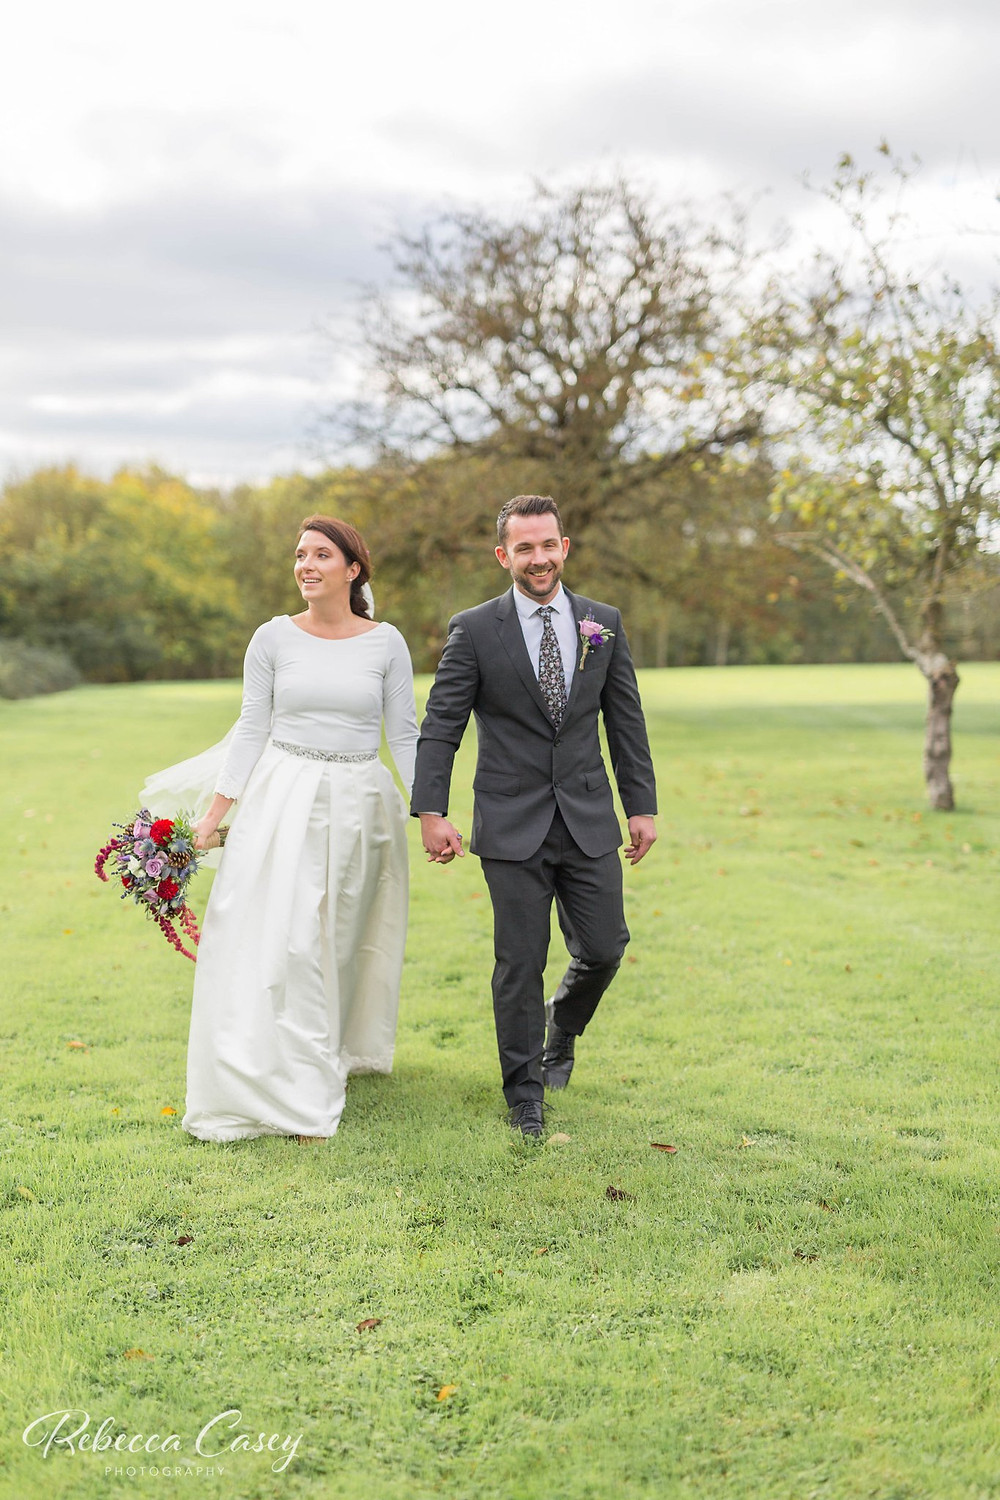 The Old Milking Parlour at Cavokay House   The Old Milking Parlour at Cavokay House Wedding   Somerset   Wiltshire Wedding Photographer   Rebecca Casey Photography   Rebecca Trueman   Melksham, Wiltshire, South West UK